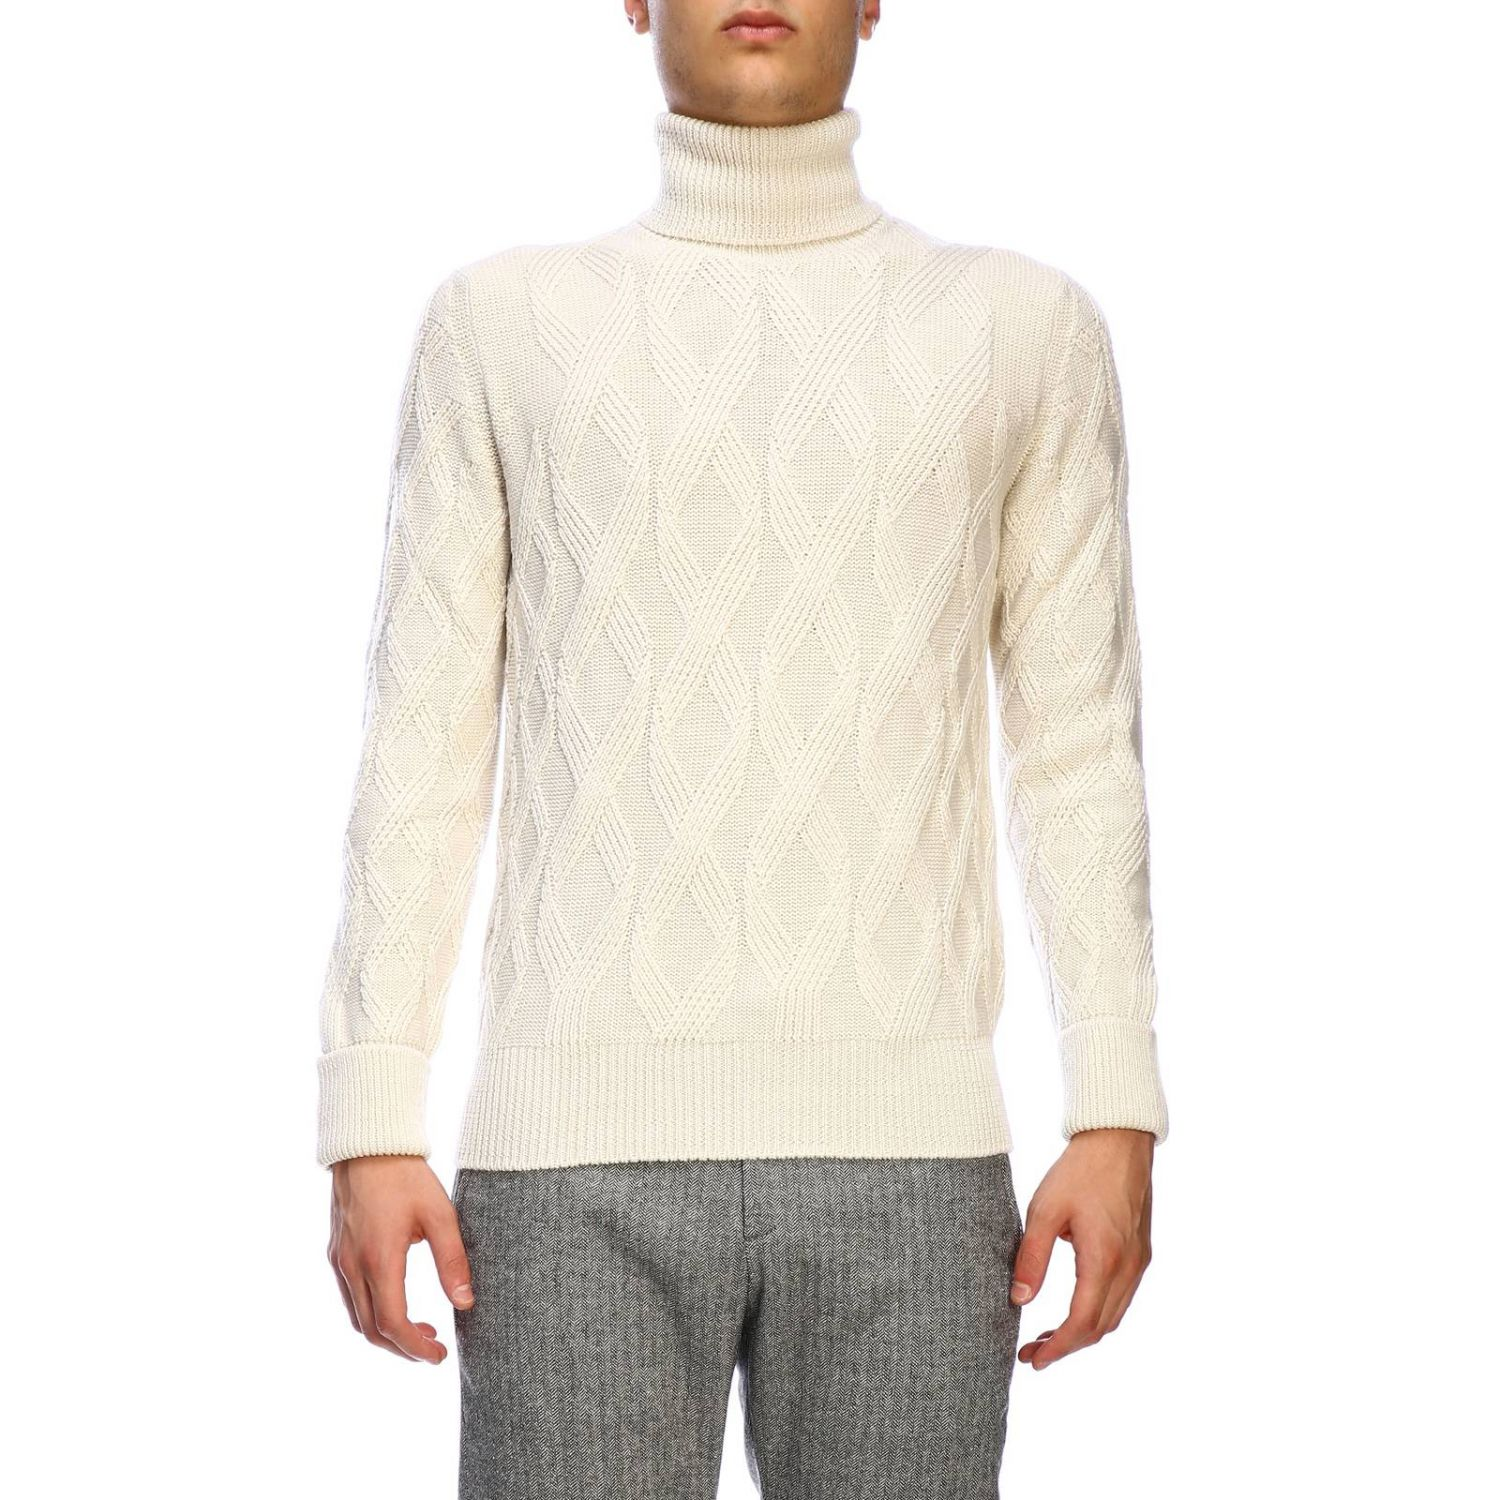 Sweater men Paolo Pecora yellow cream 1